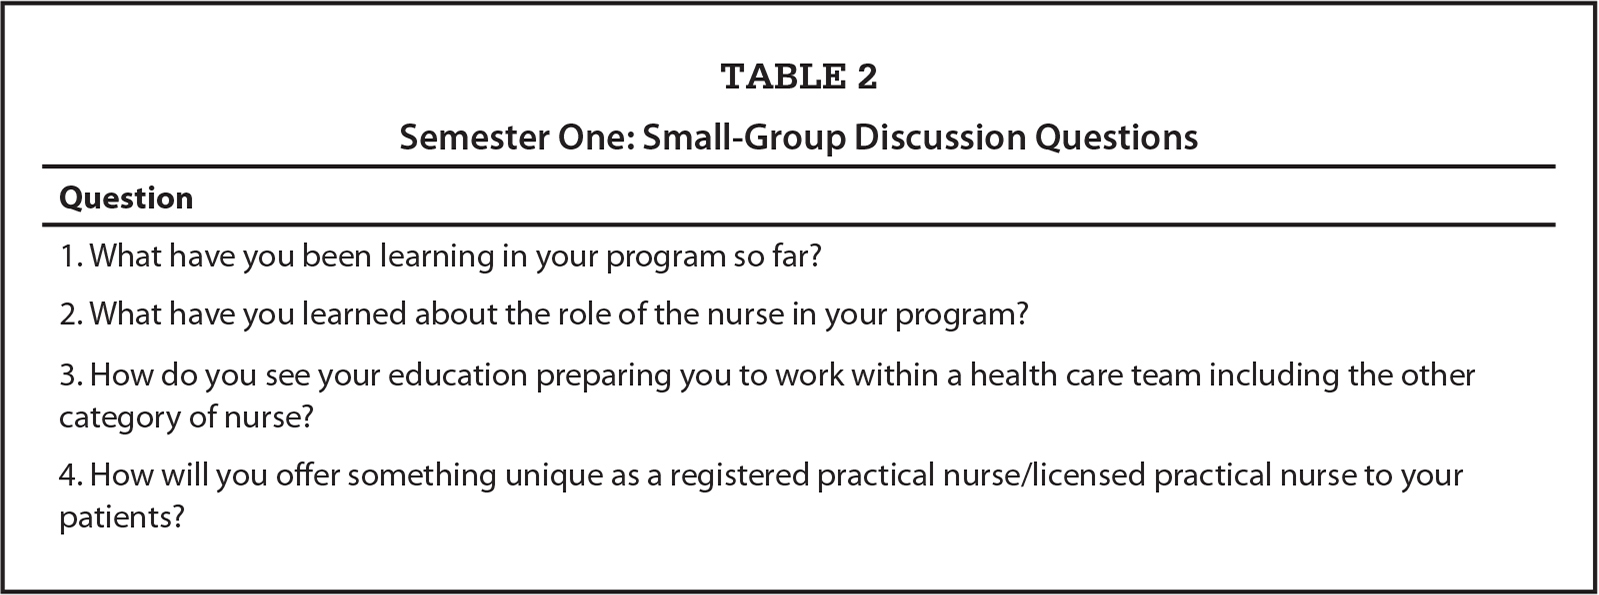 Semester One: Small-Group Discussion Questions